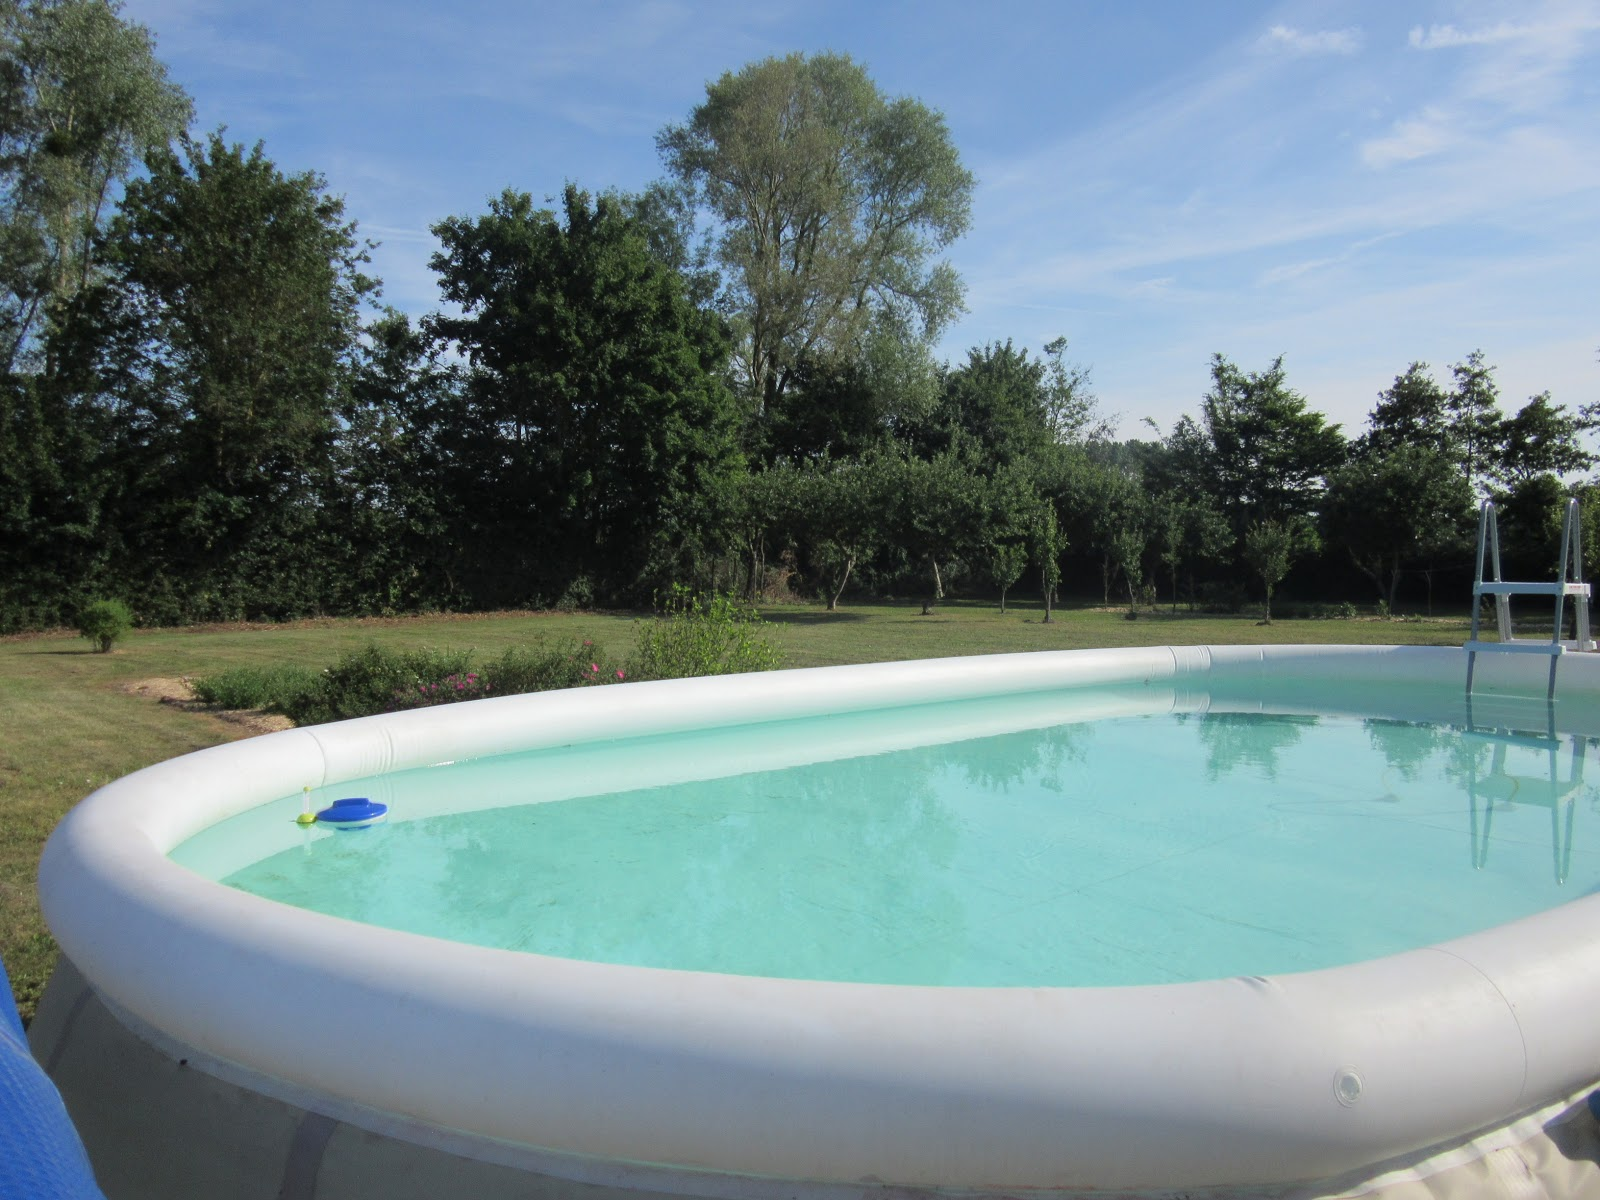 Loire valley hollidays cottage c la piscine for Piscine vallet